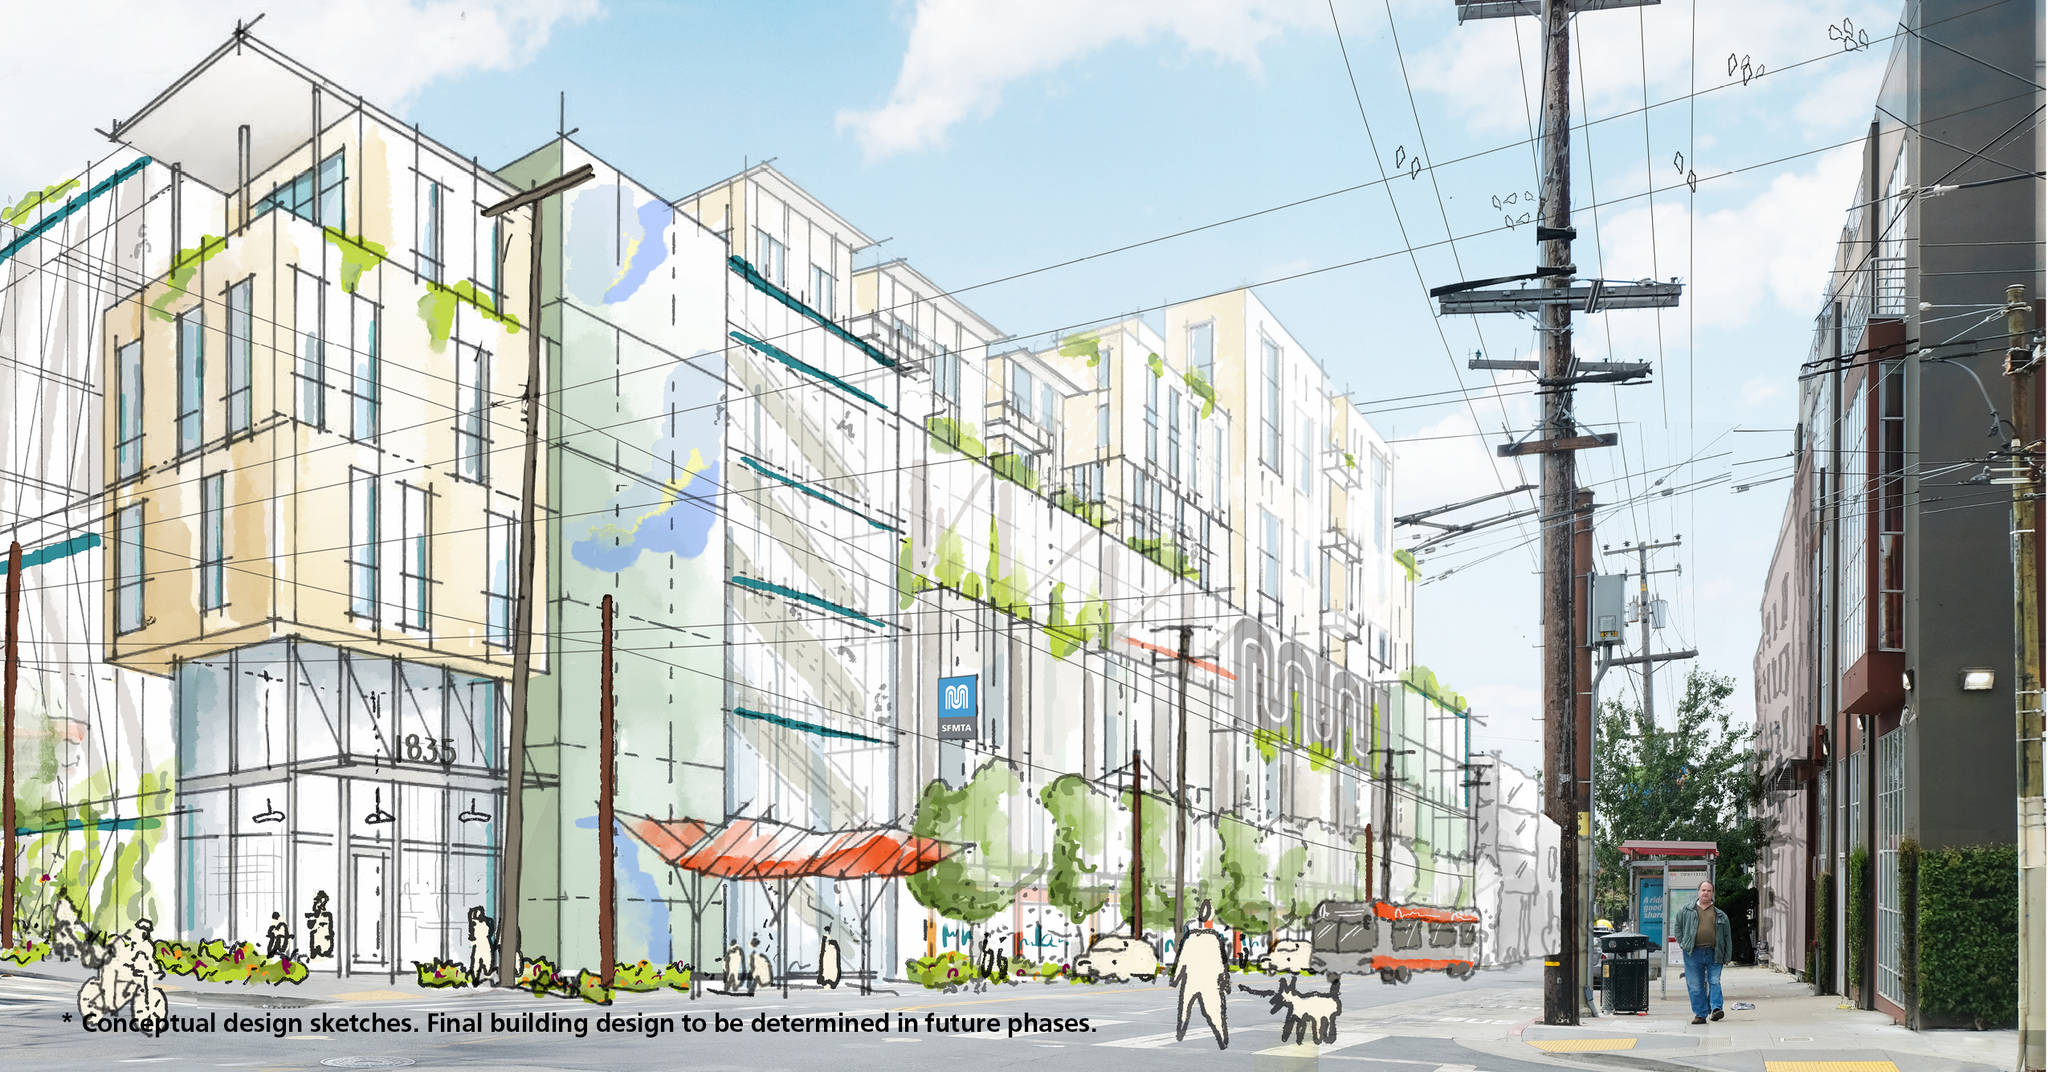 Design plans for a housing project at the Muni Potrero Yard. (Courtesy SFMTA)